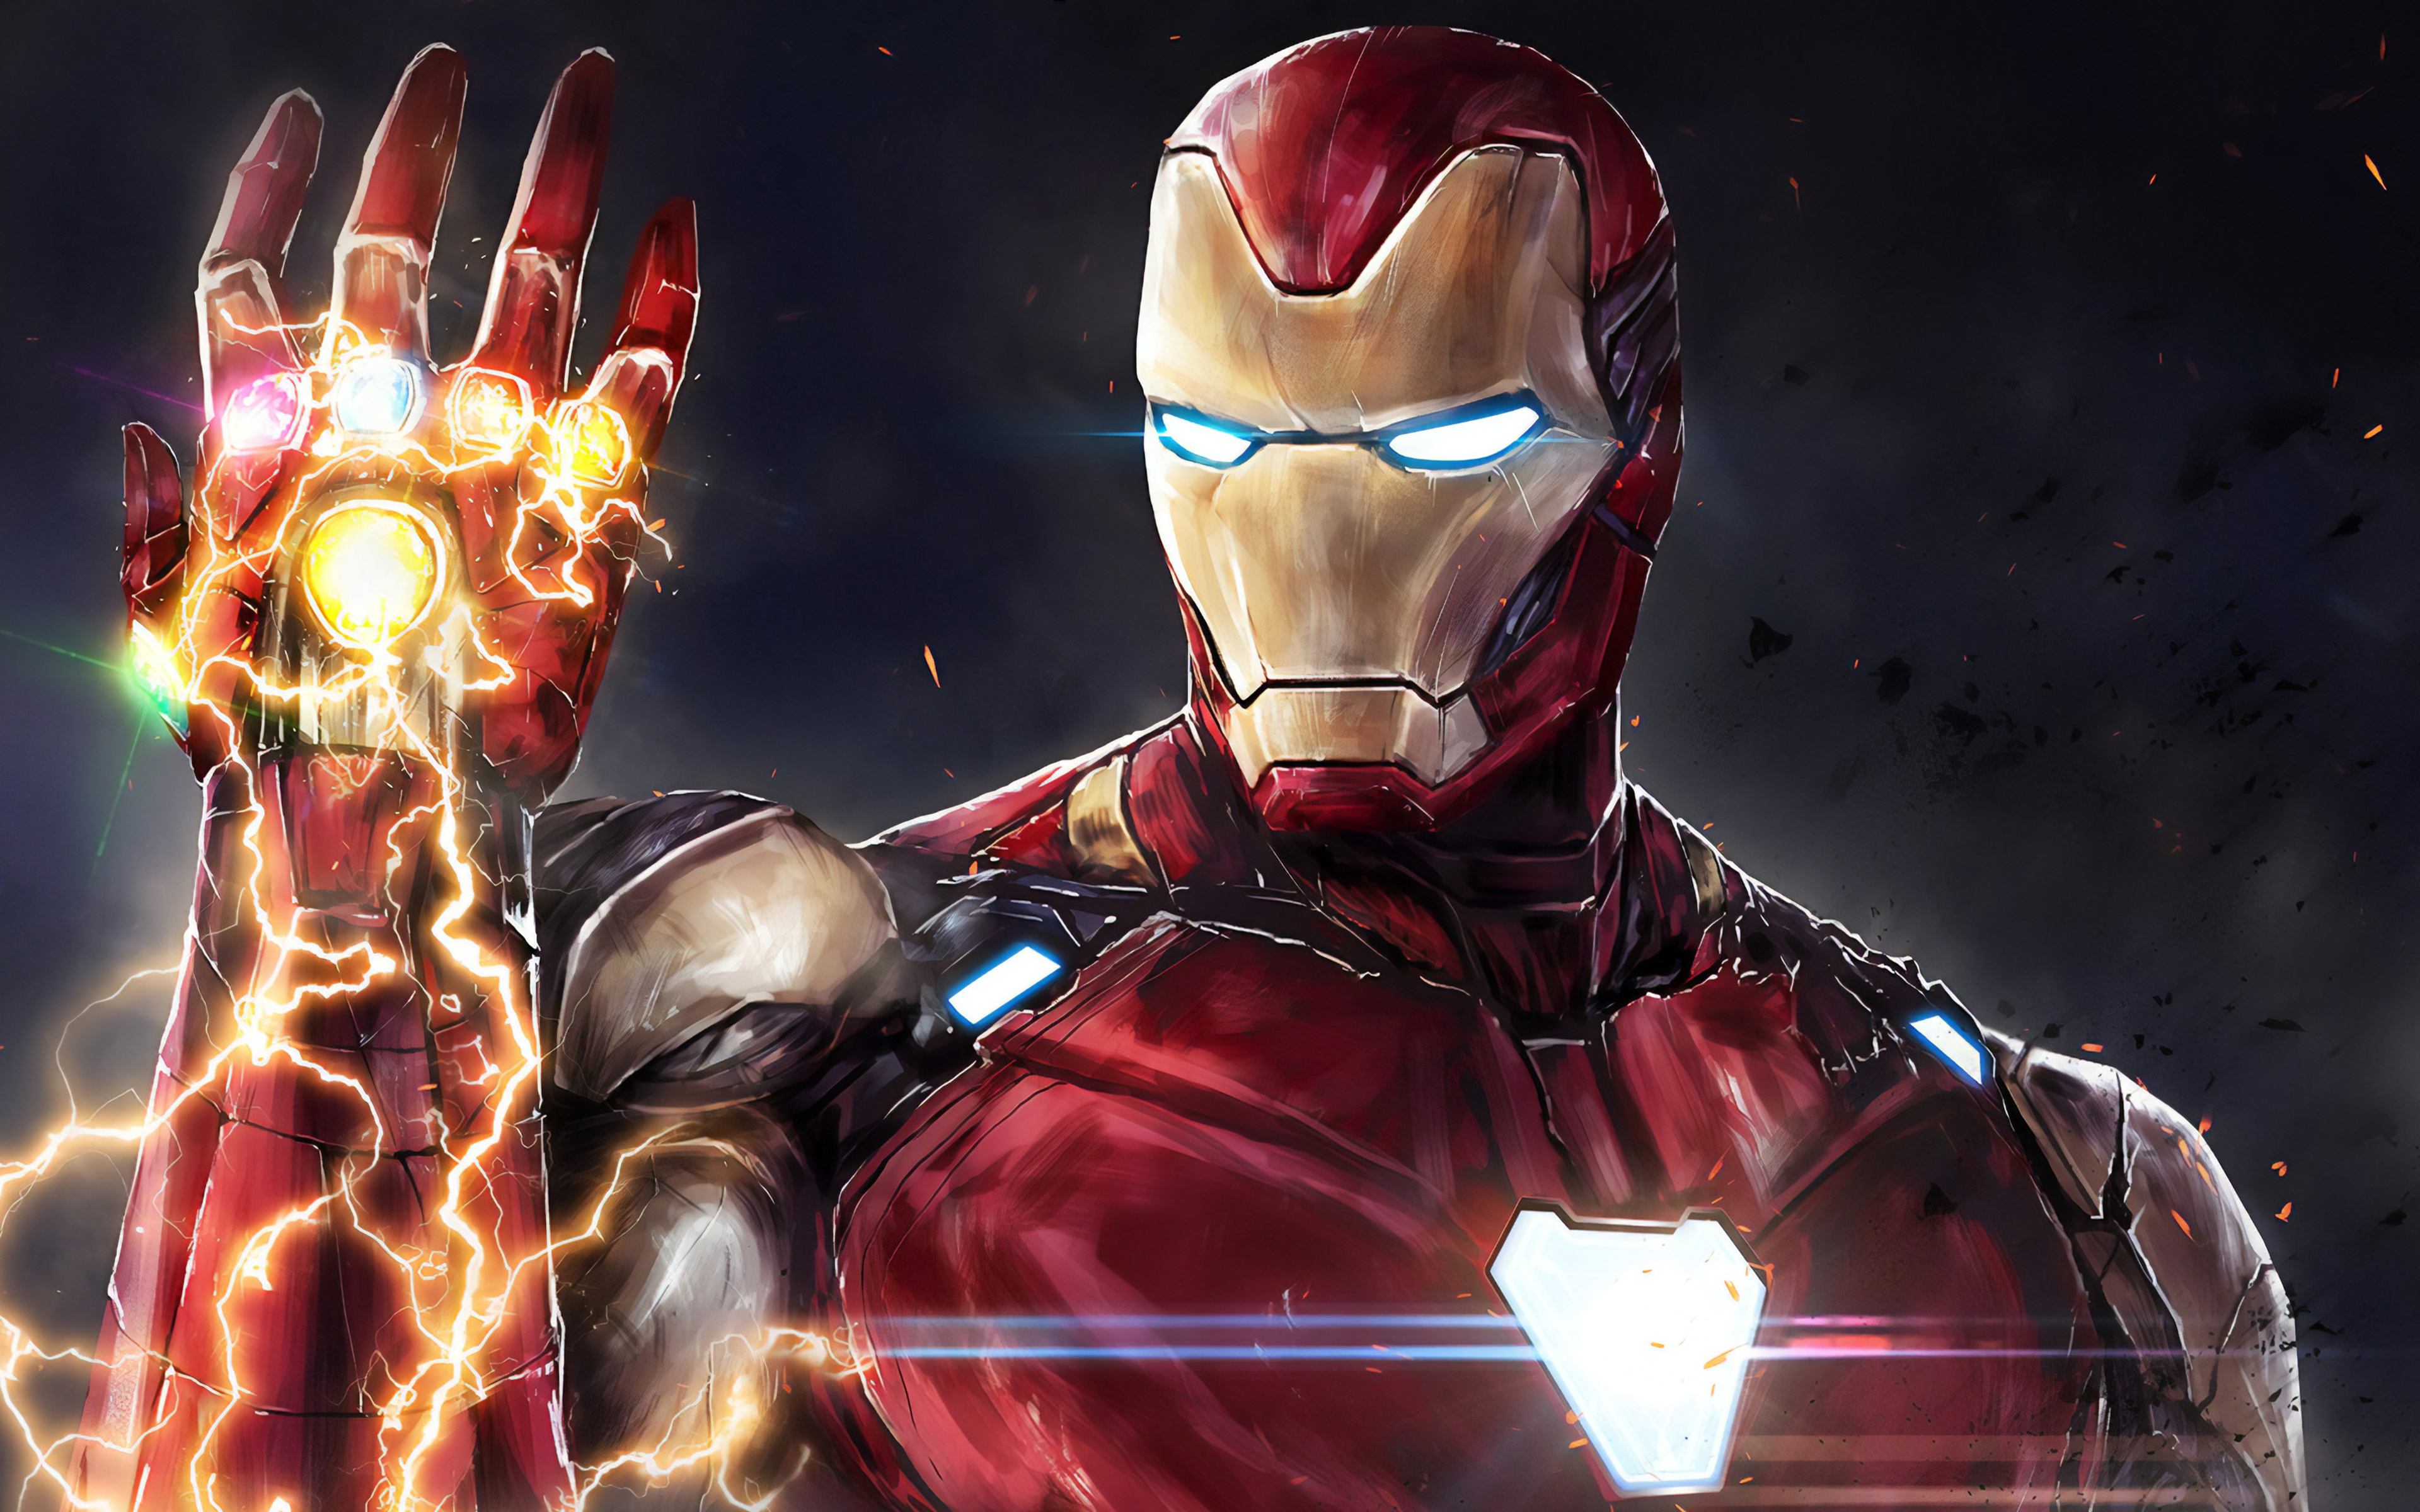 3840x2400 I Am Iron Man 4k 4k HD 4k Wallpapers, Images ...